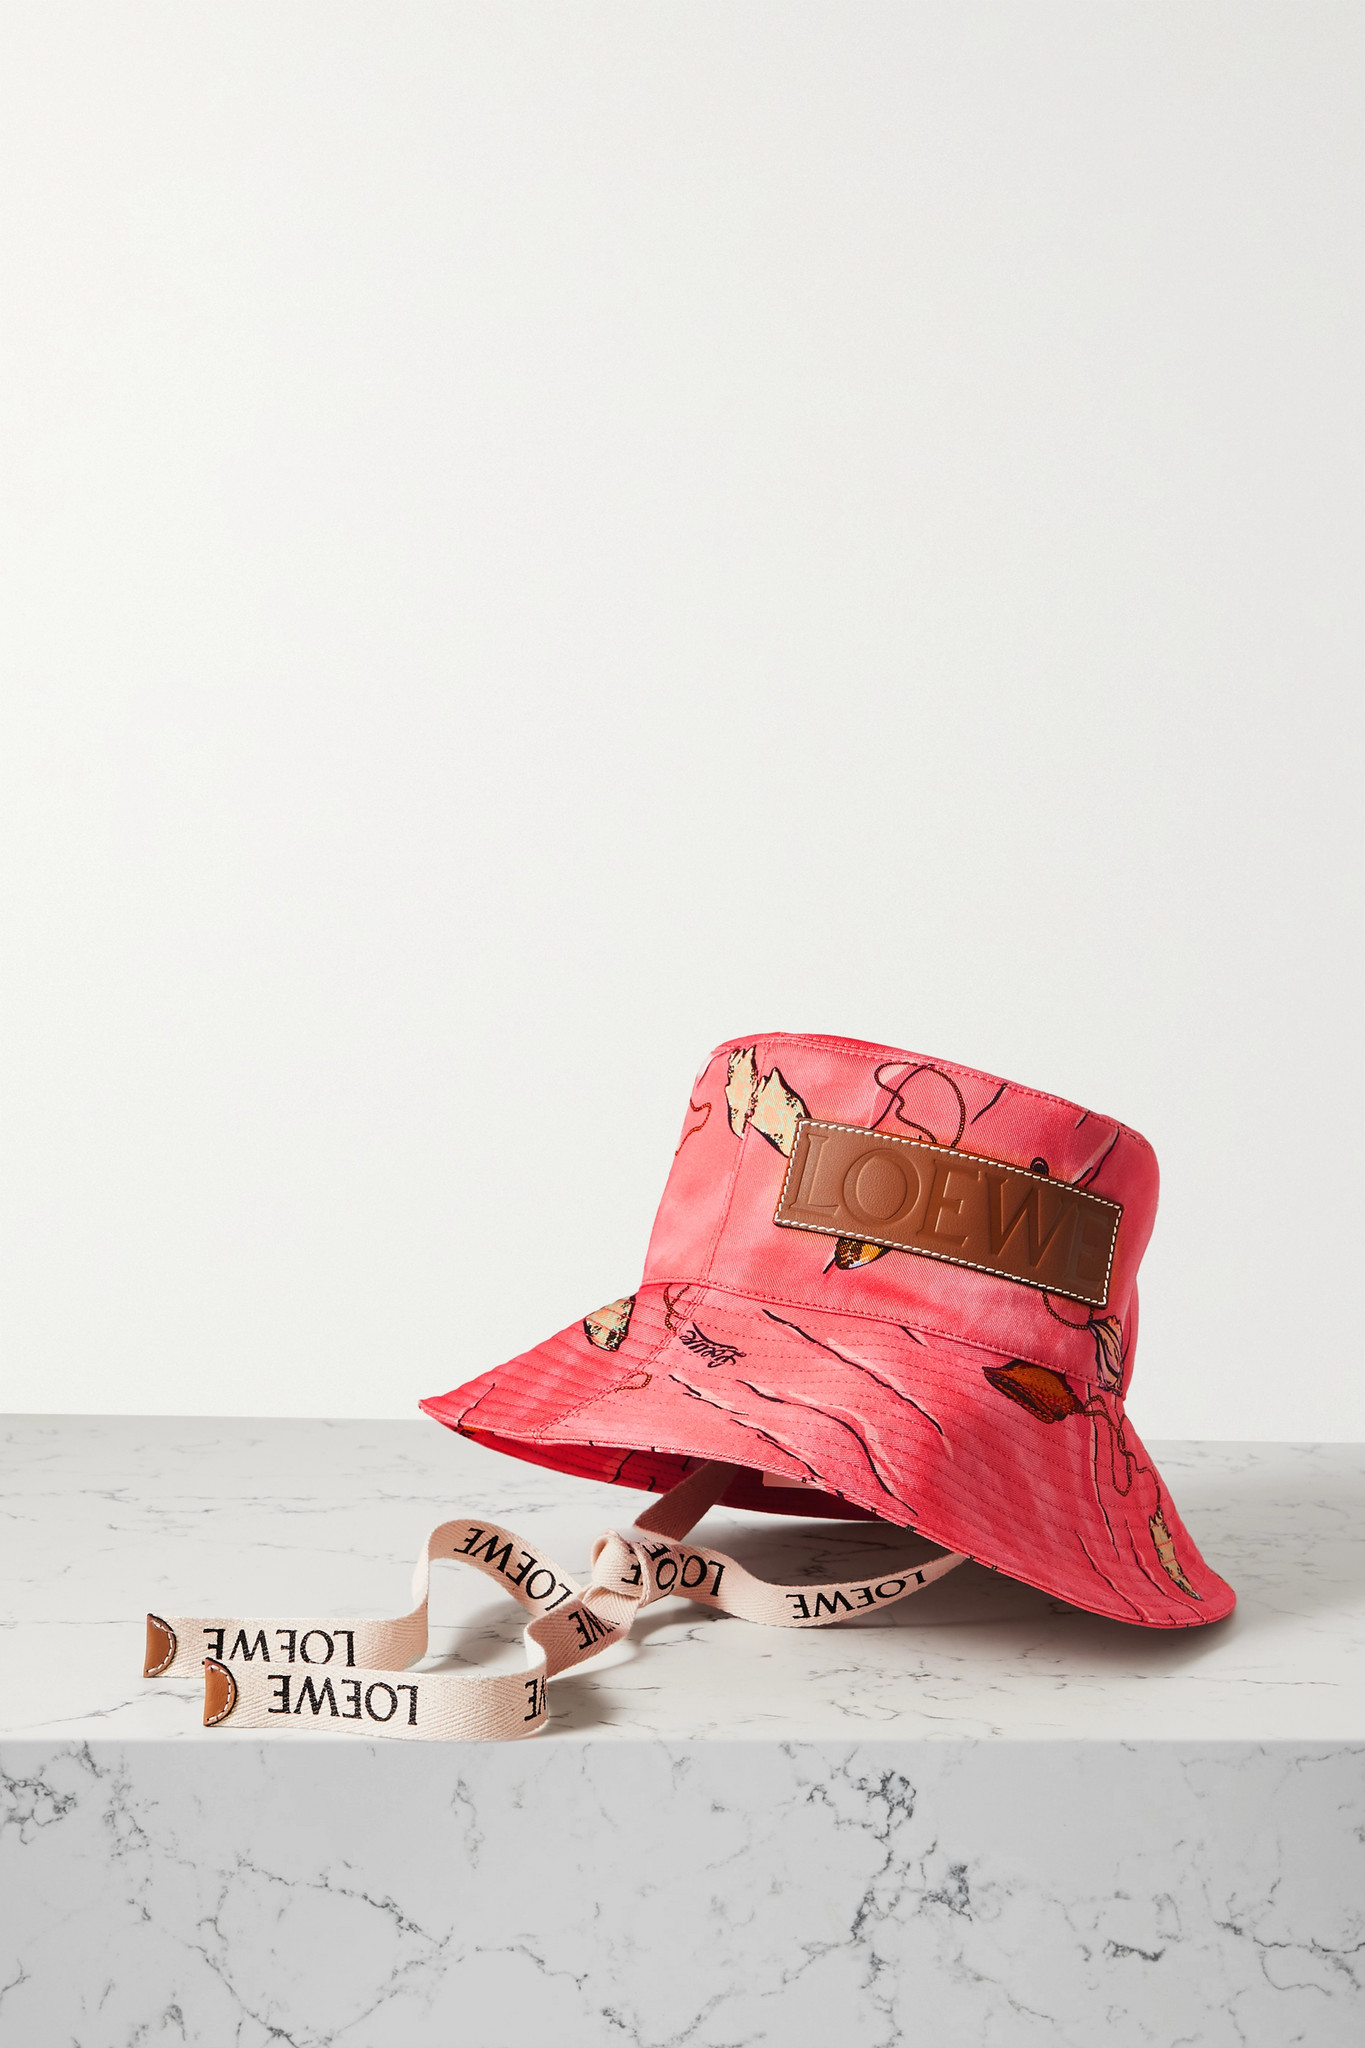 LOEWE - + Paula's Ibiza Leather-trimmed Printed Cotton-twill Bucket Hat - Pink - S